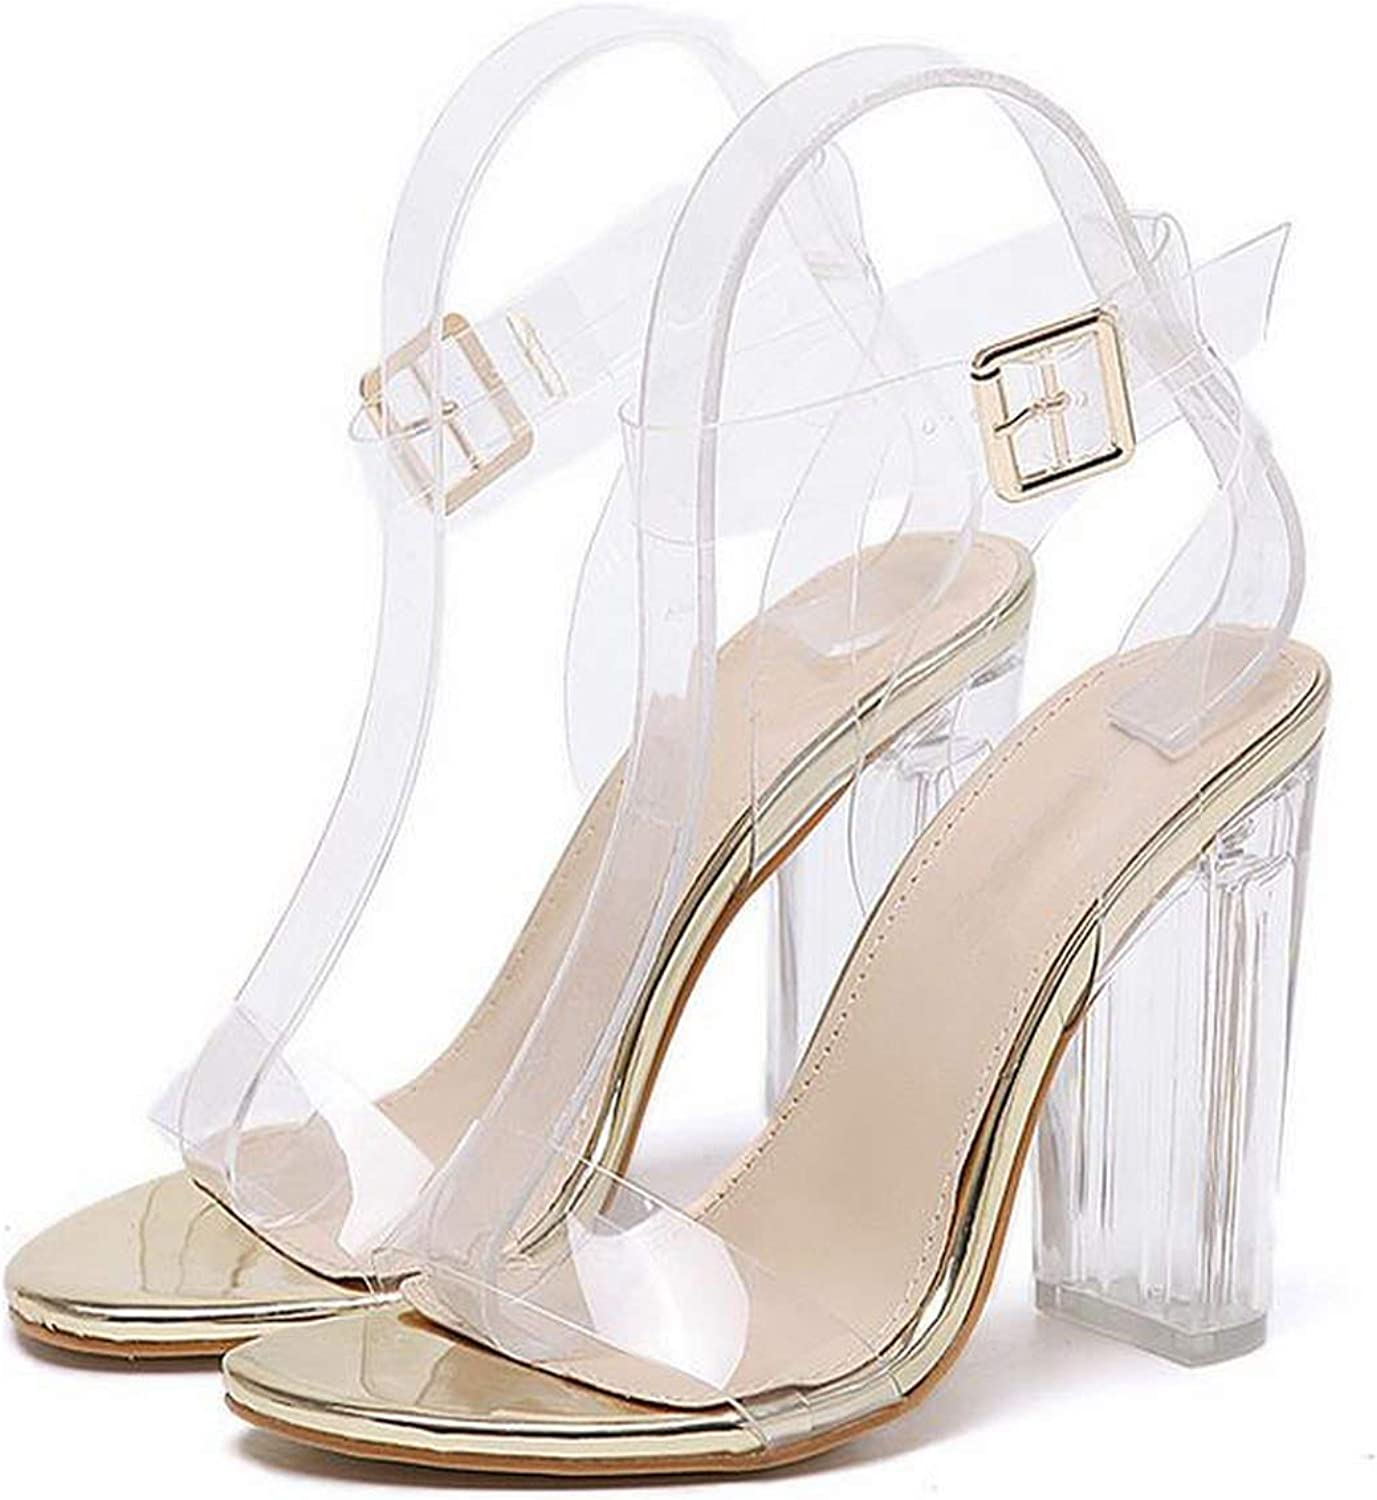 CoraSheep New PVC Women Sandals Sexy Clear Transparent Ankle Strap High Heels Party Sandals Size 35-42